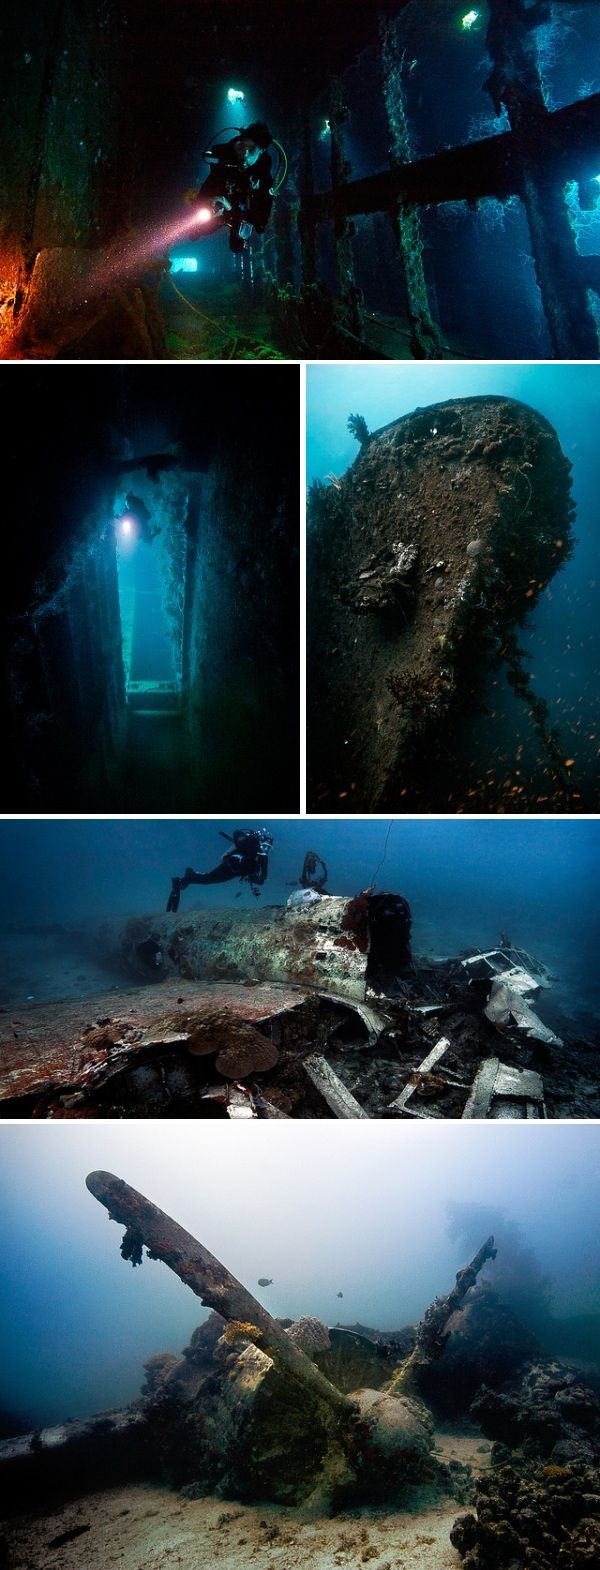 Truk-Lagoon-wrecks-micronesia-pacific-ocean.  The history would be amazing to explore in and out of the water.